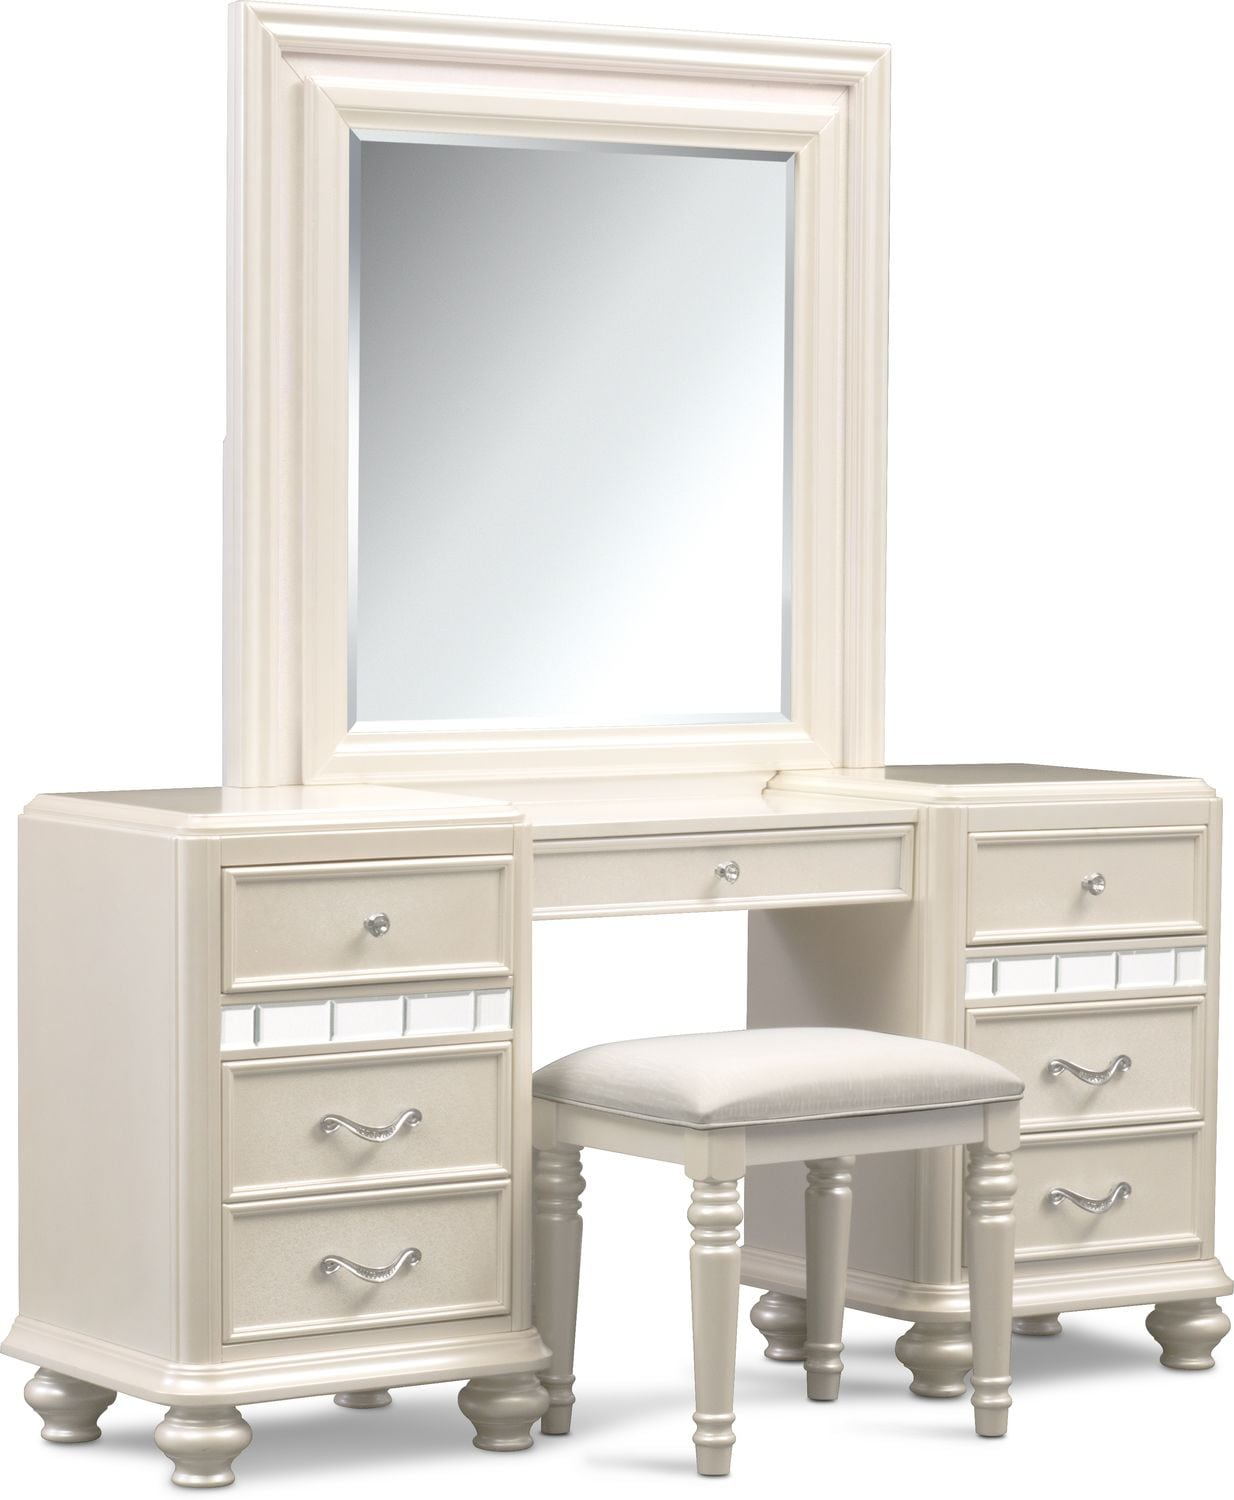 Sabrina Vanity Desk, Mirror and Bench | Value City Furniture and ...